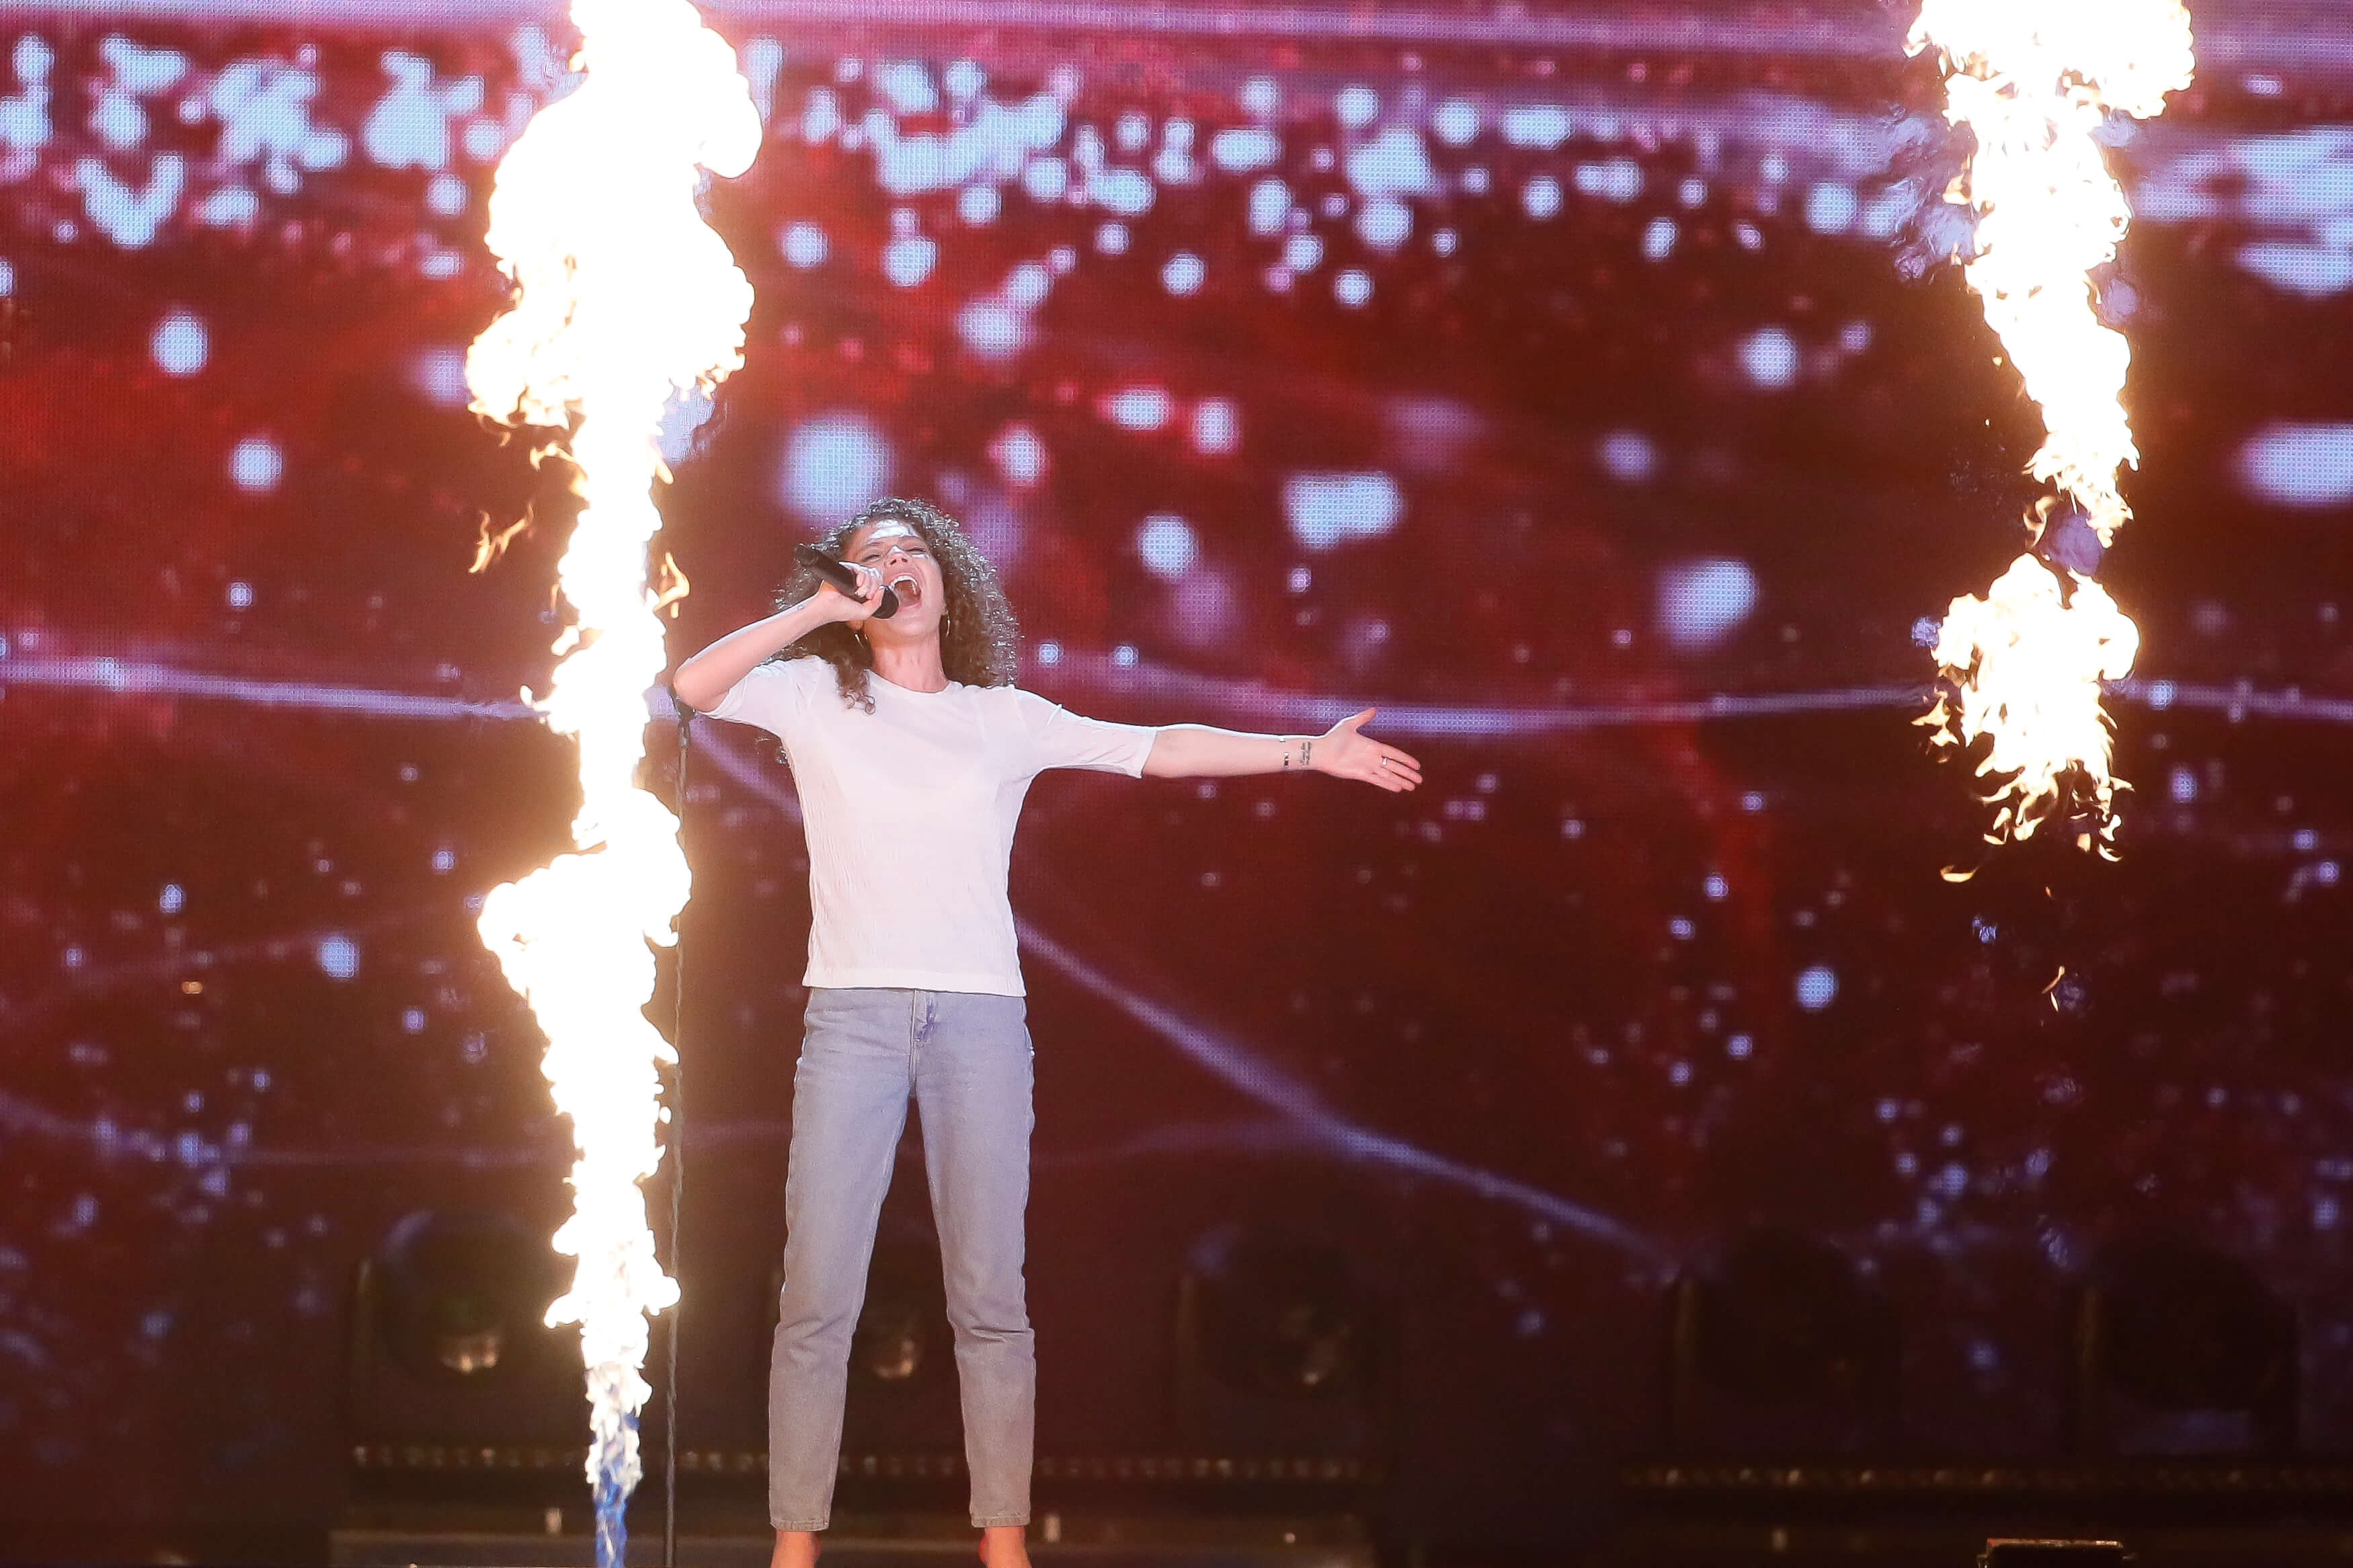 Image: Andres Putting/ Thomas Hanses (EBU) | The 62nd Eurovision Song Contest in Kyiv, Ukraine.